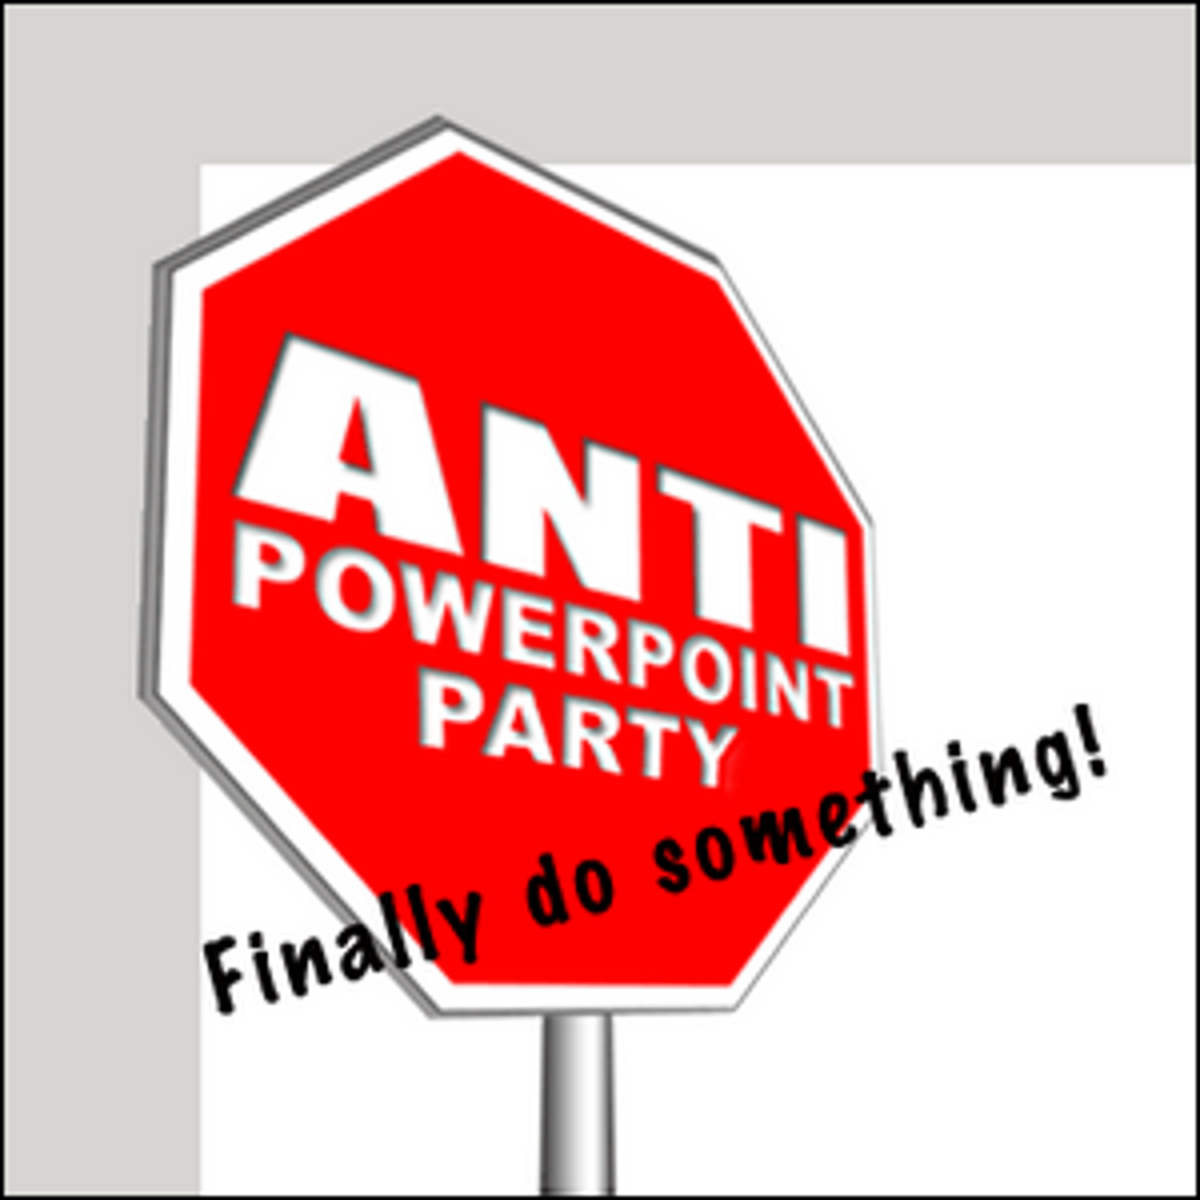 Promotional material for the Anti-PowerPoint Party.